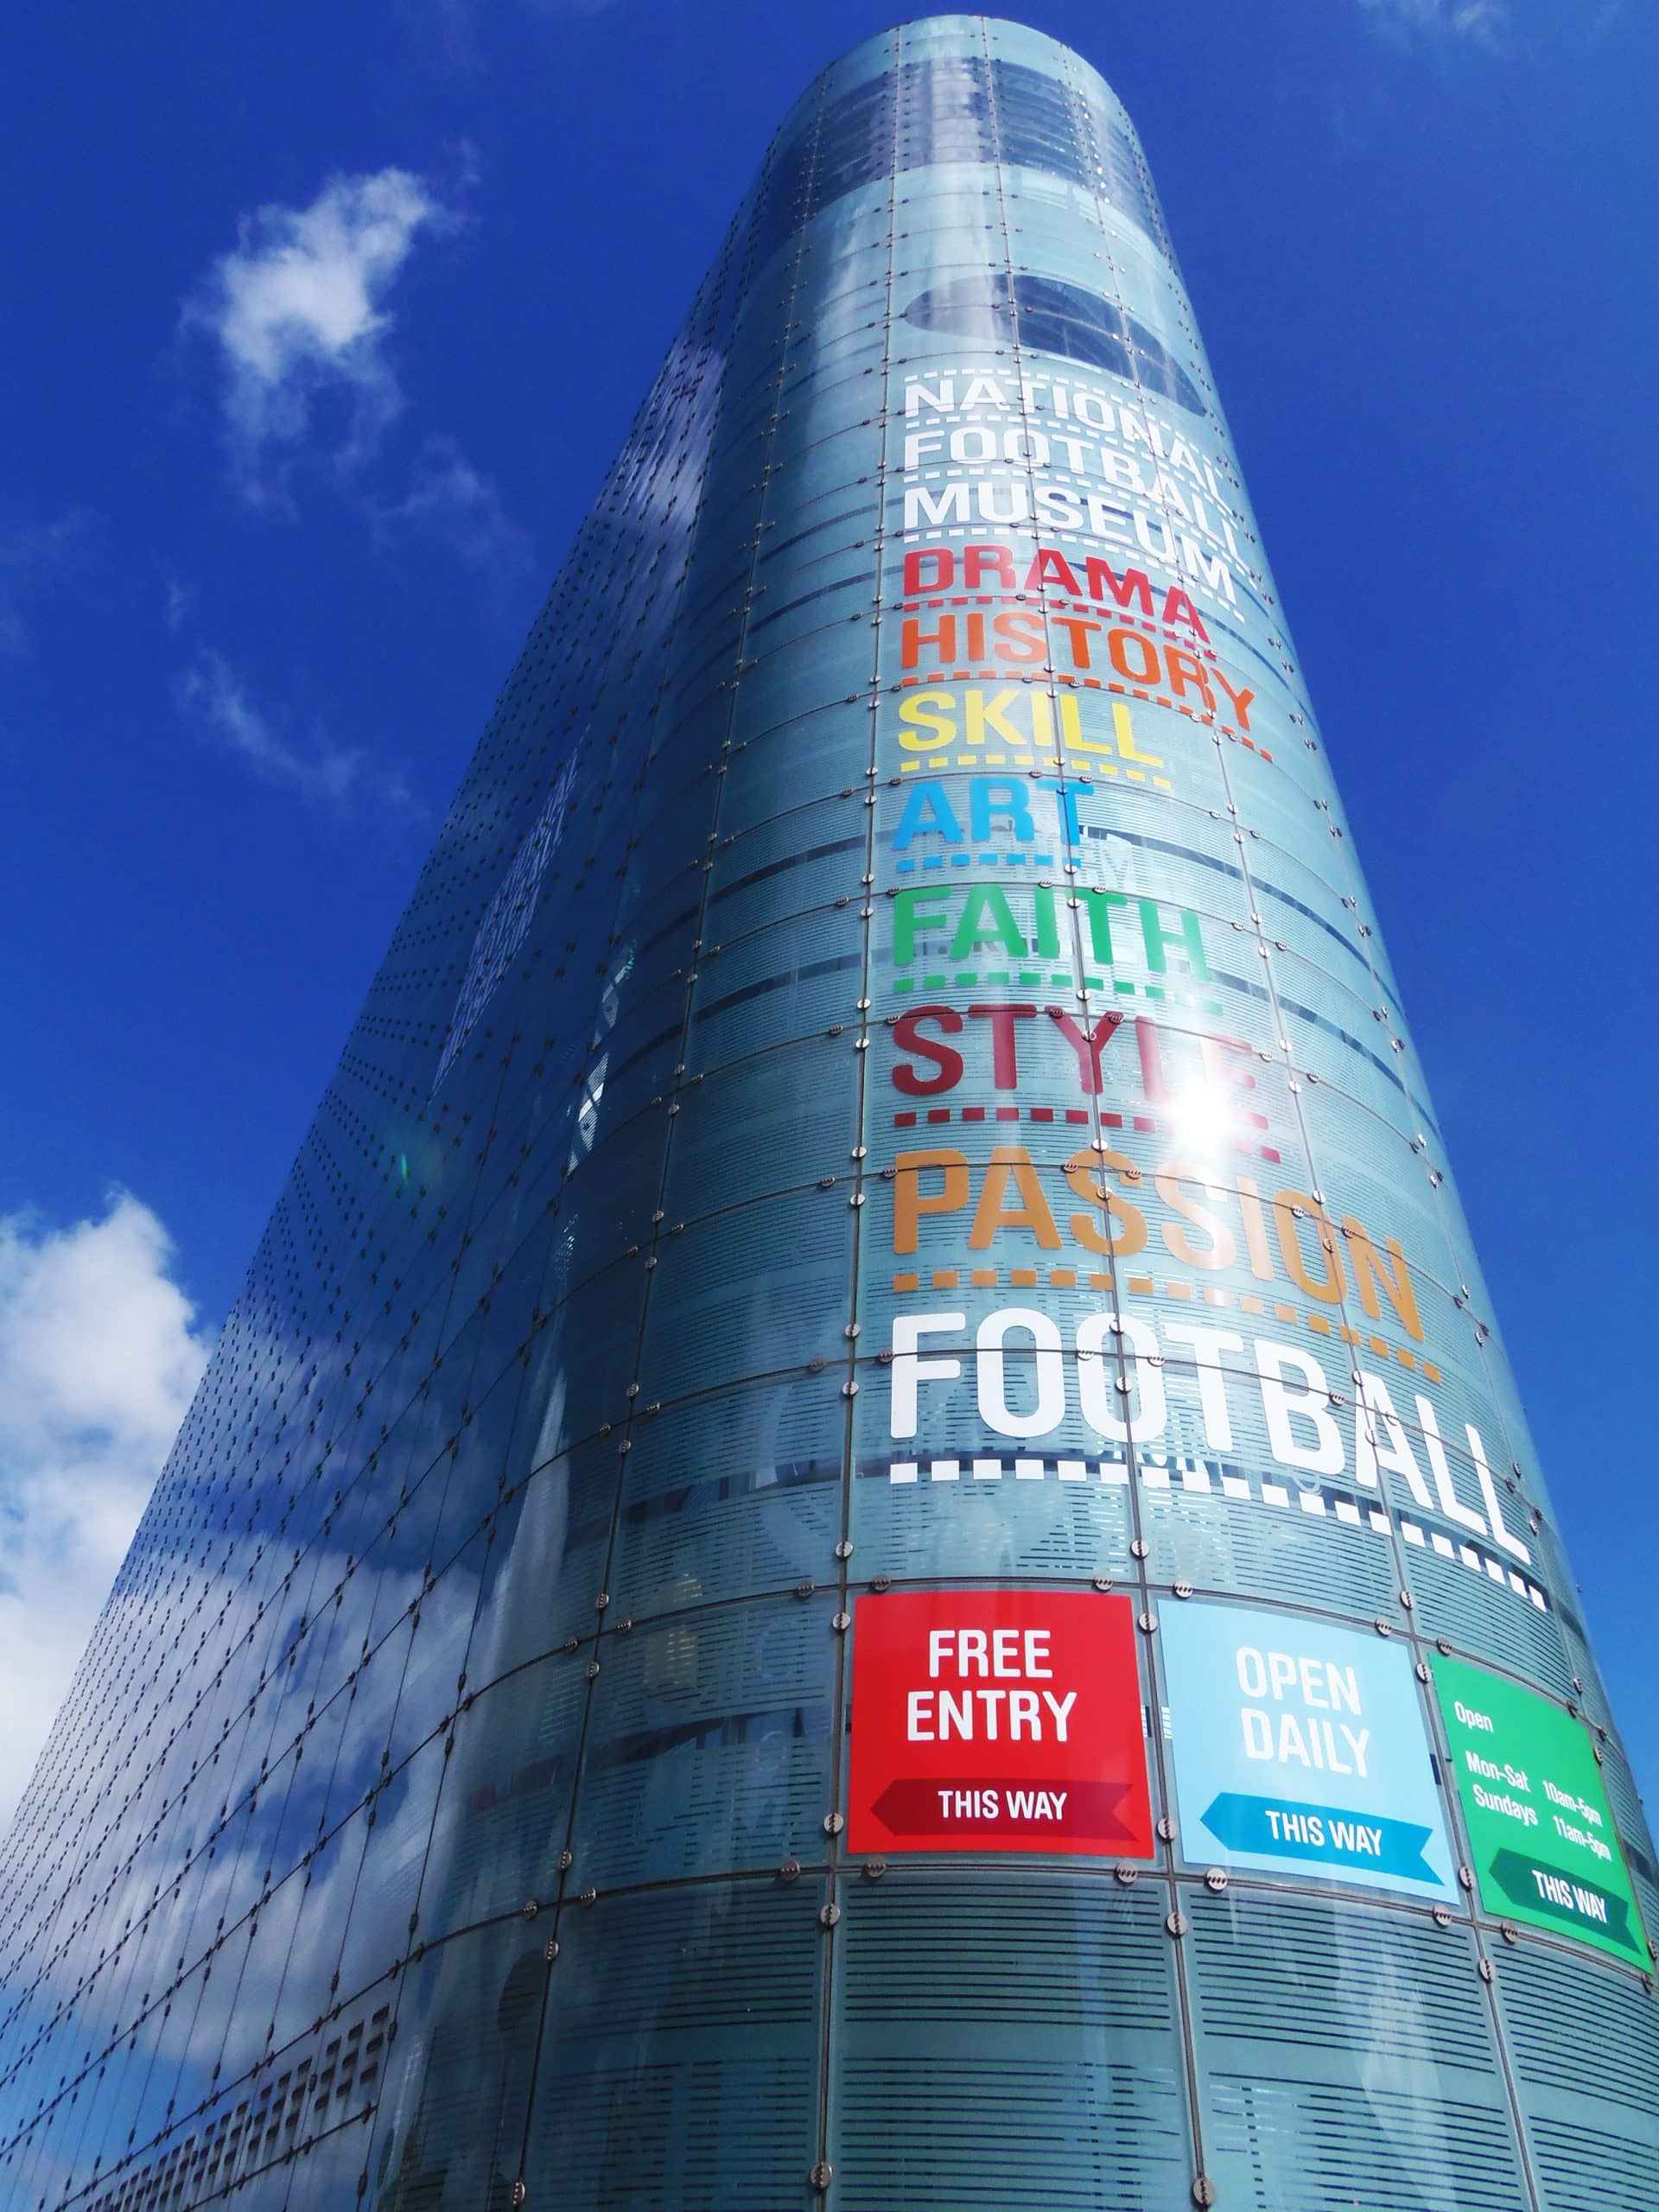 National Football Museum scaled